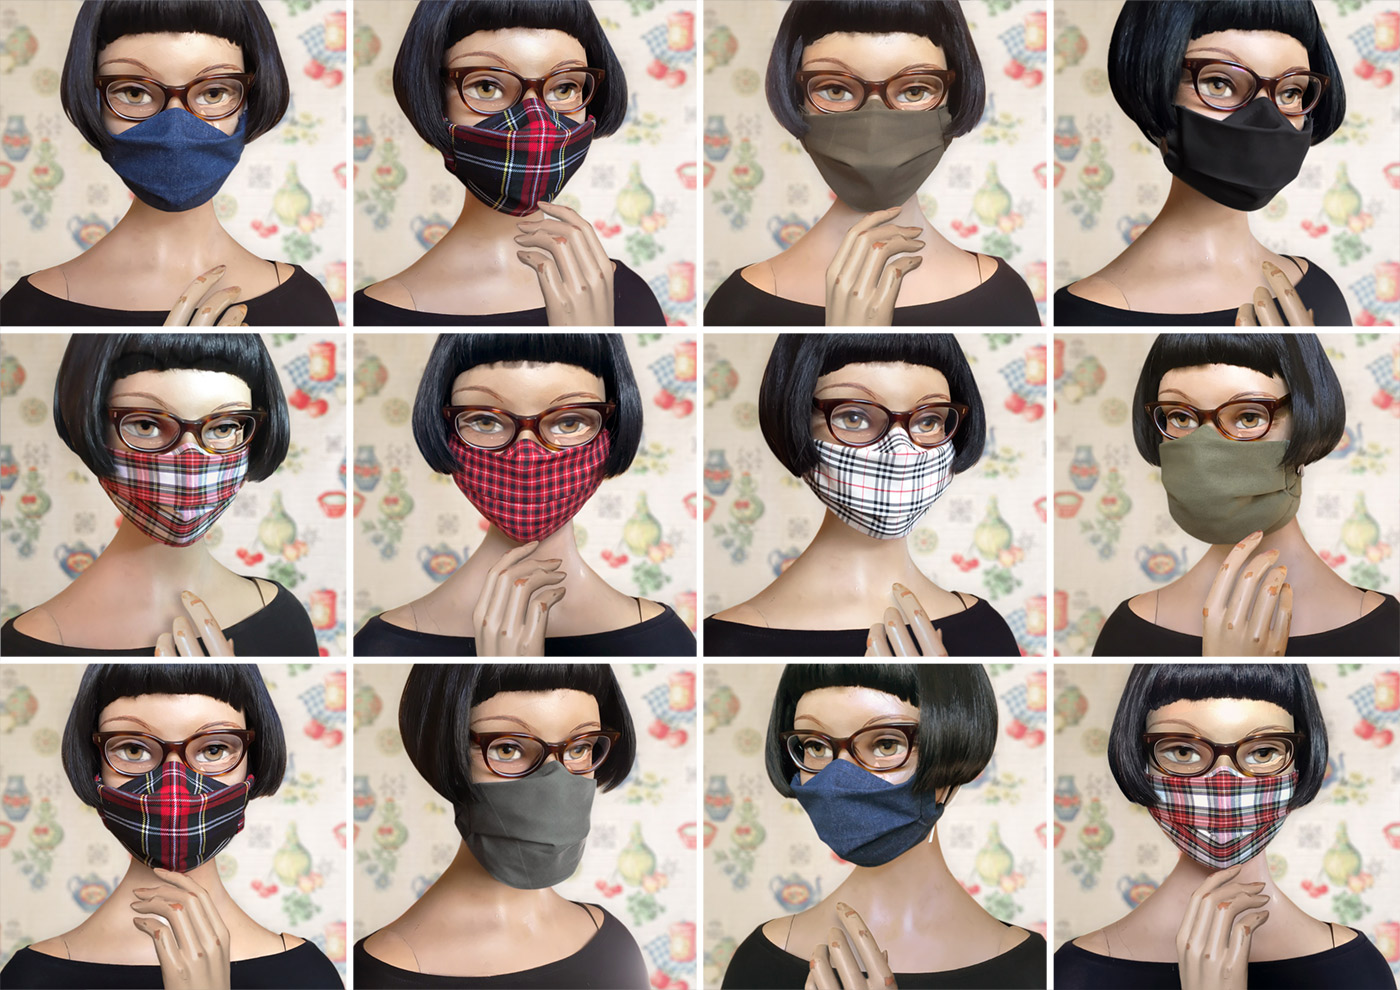 Hybrid mask, Glasses Mask or Beard Mask pattern for glasses wearers and beard wearers by Iris Luckhaus